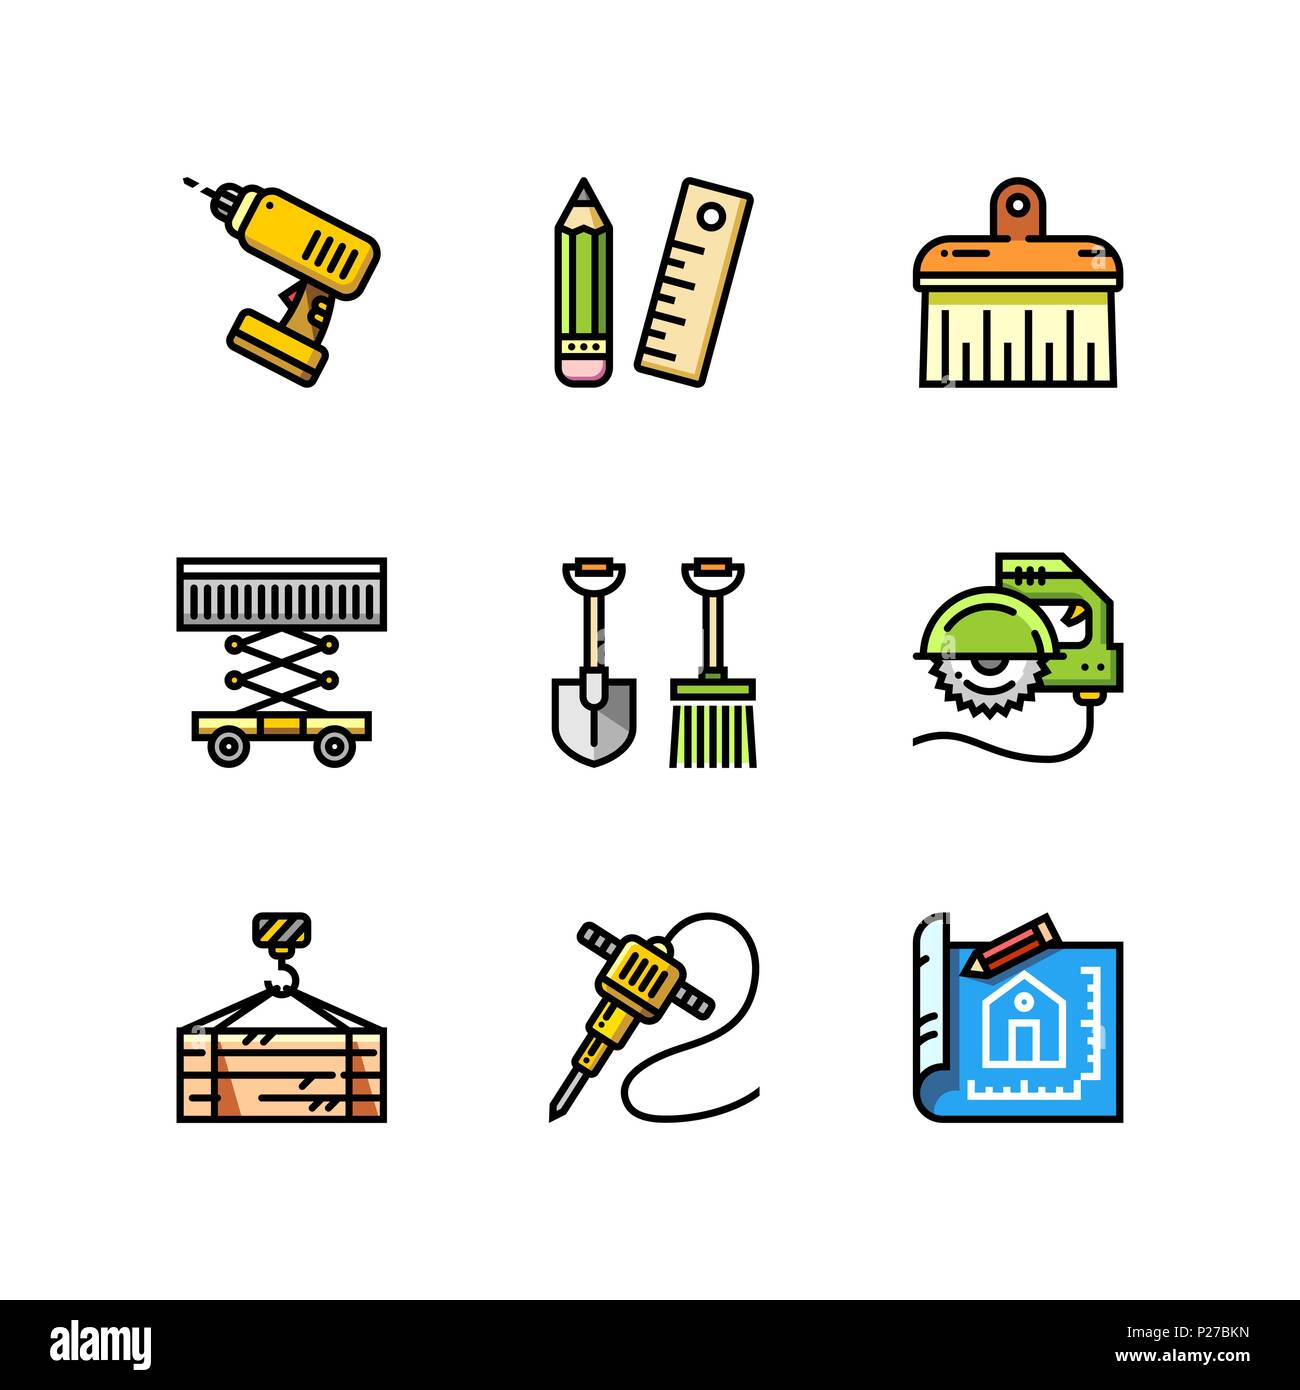 Building, Construction And Home Repair Tools Simple Outline Colorful Icons  For Web And Mobile Design Set 4